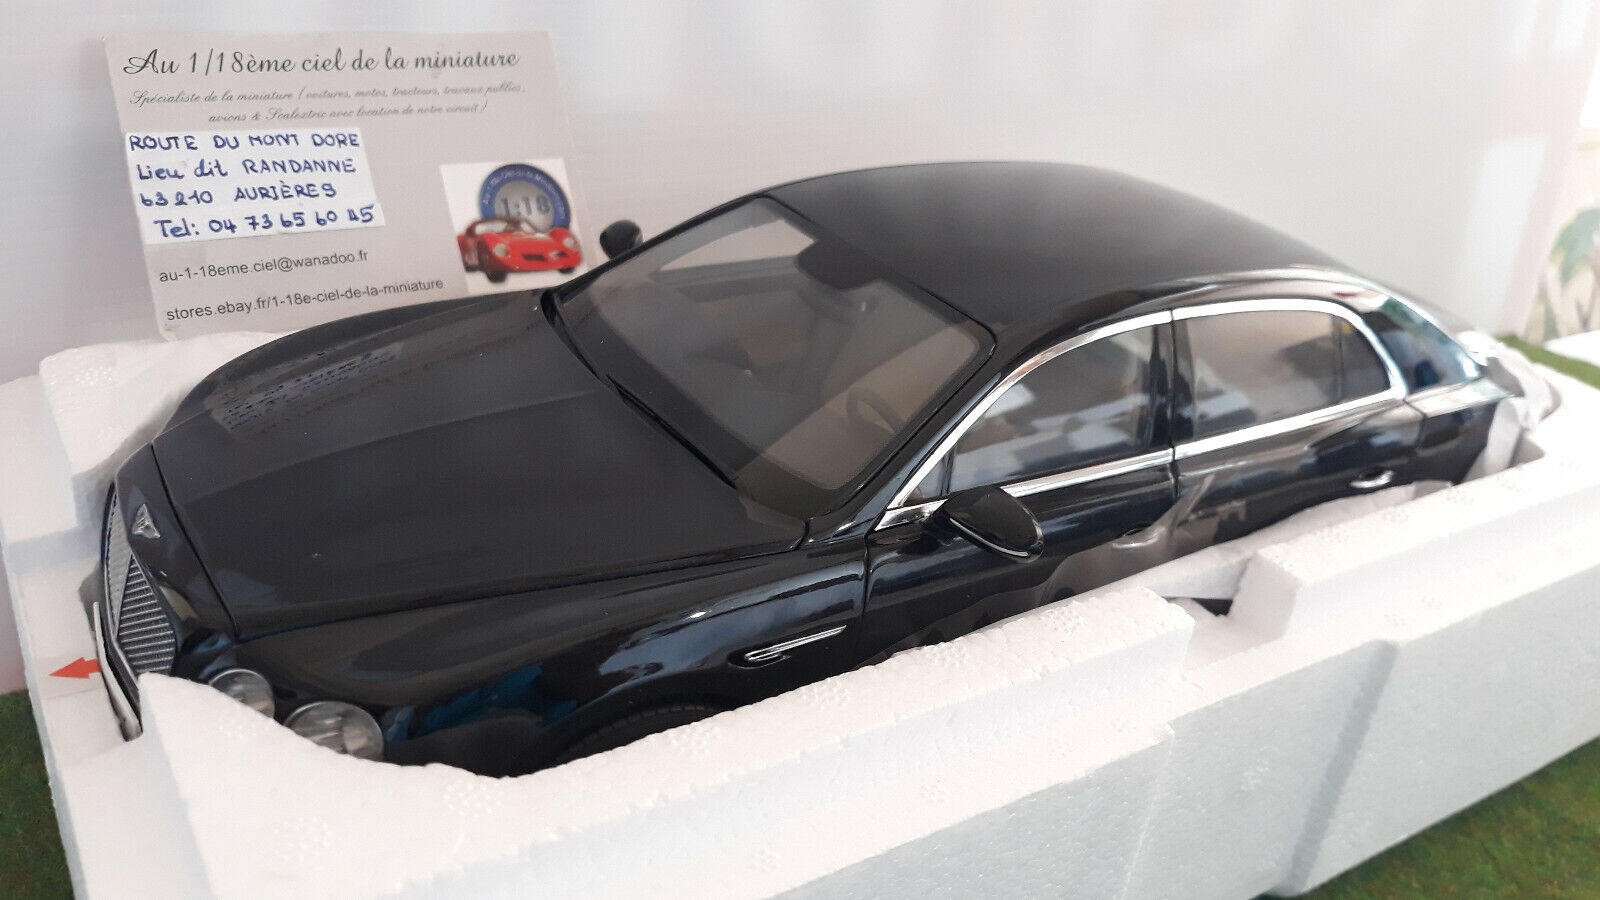 BENTLEY FLYING SPUR W12 noir onyx 1 18 KYOSHO 08891NX voiture miniature collecti